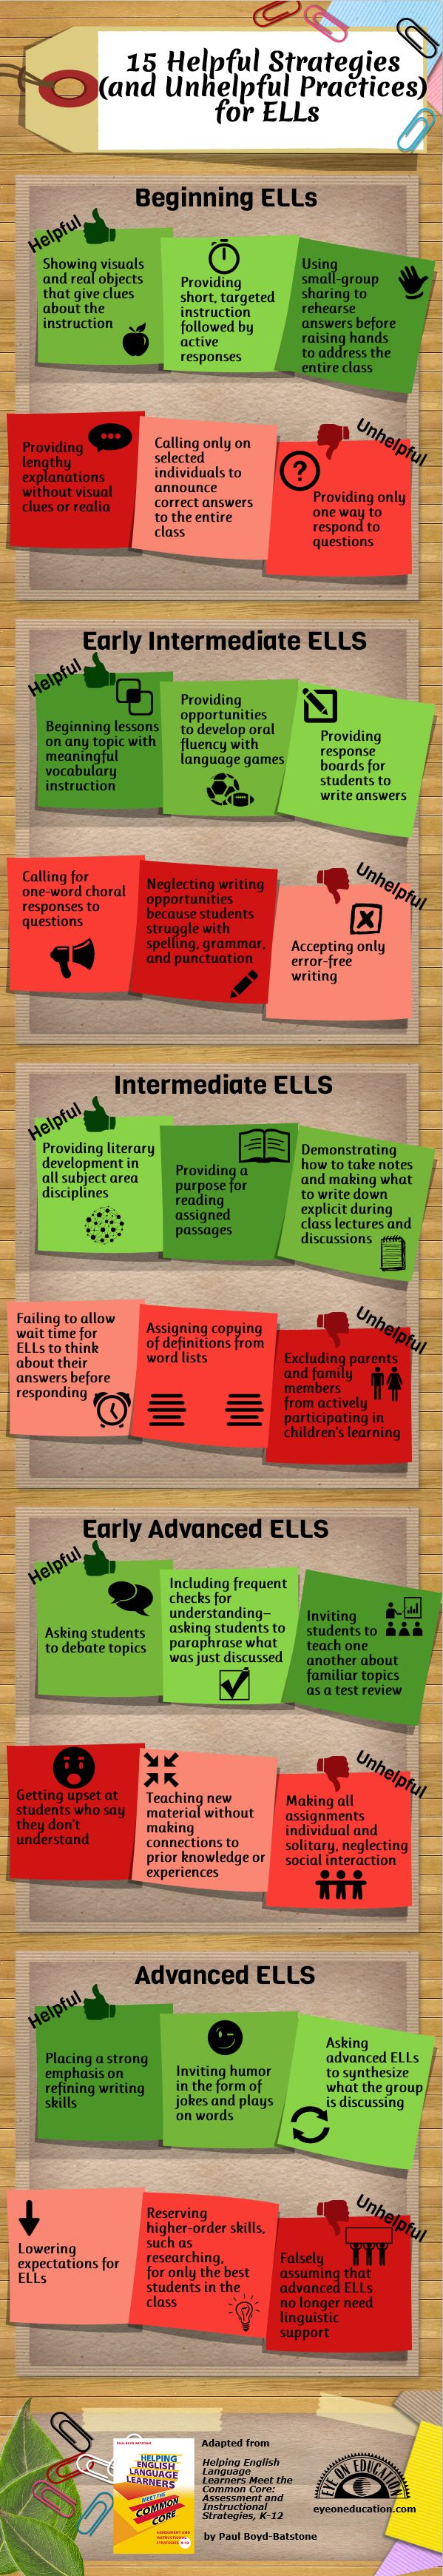 Infographic: 15 Helpful Strategies (and Unhelpful Practices) for ELLs > Eye On Education:  http://www.eyeoneducation.com/Blog/articleType/ArticleView/articleId/2893/Infographic-15-Helpful-Strategies-and-Unhelpful-Practices-for-ELLs#.UXgOHhlOkXz